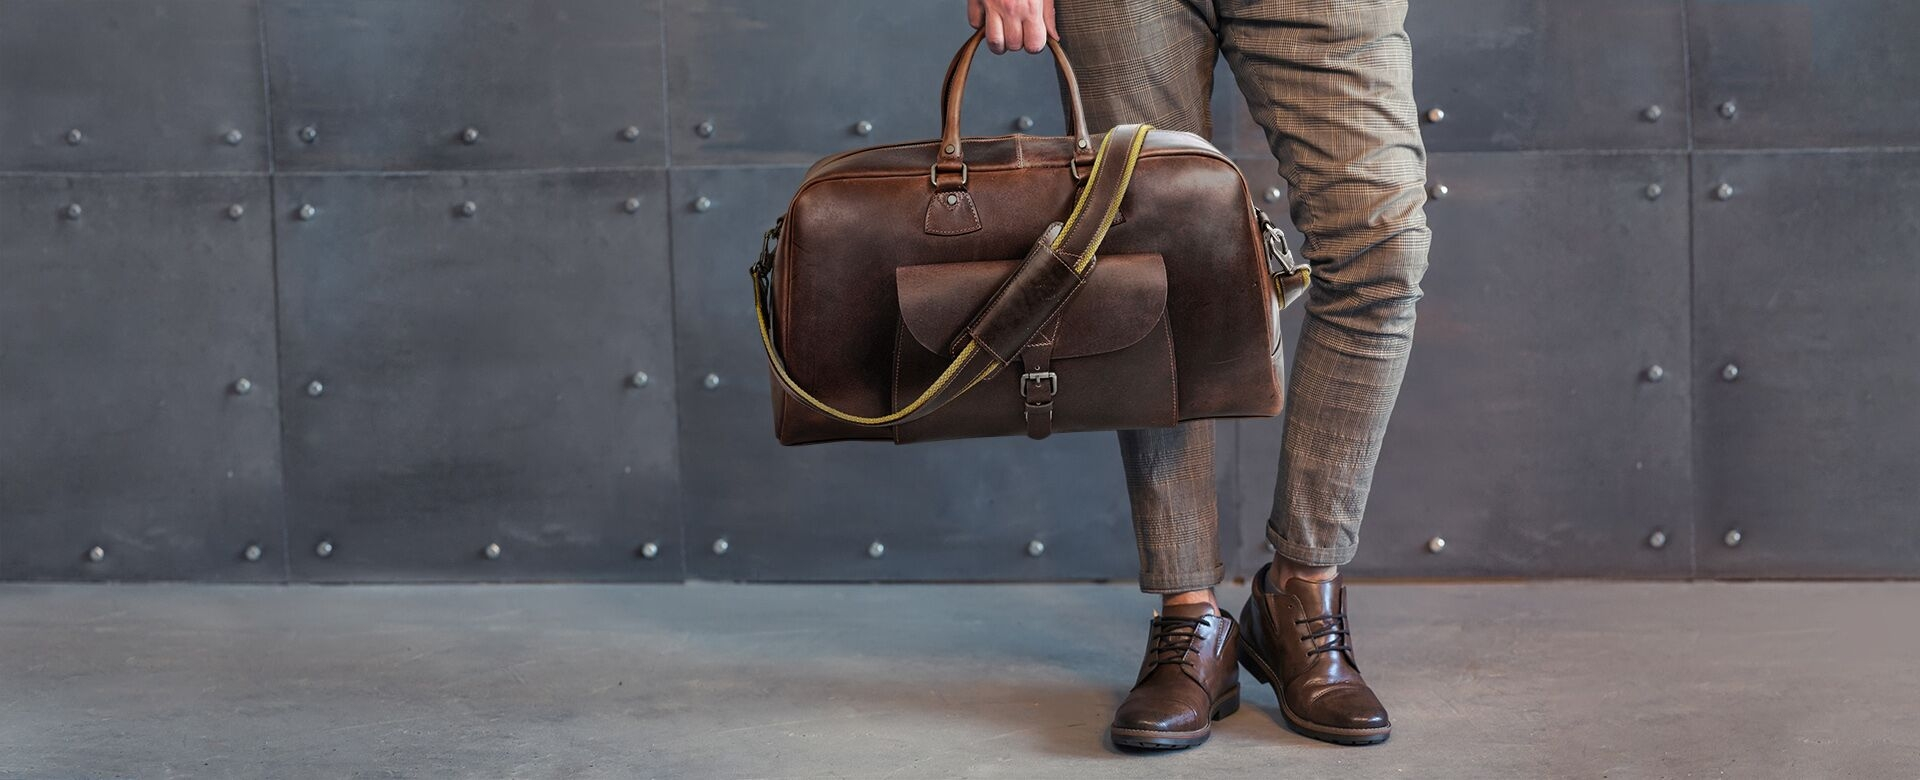 Aaron Leather Goods (@aaronleathergoods) Cover Image